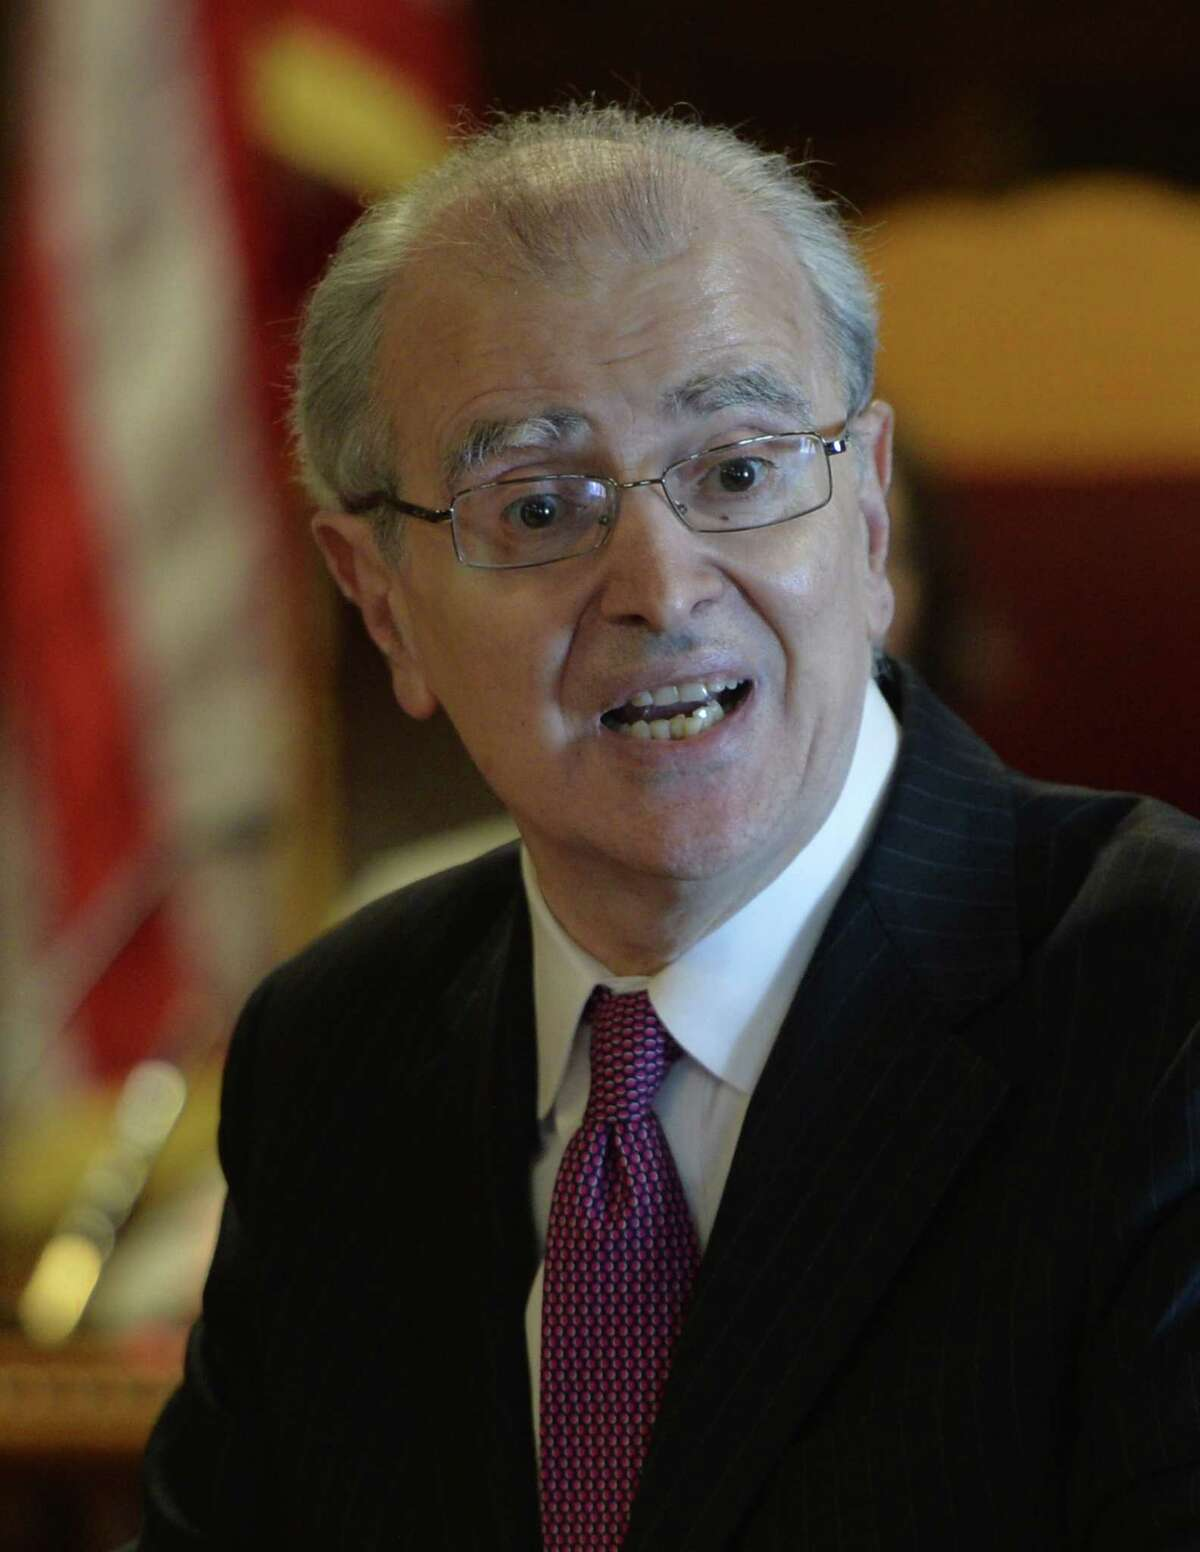 New York State Court of Appeals Chief Judge Jonathan Lippman gives his State of the Judiciary address in Court of Appeals Hall Tuesday afternoon Feb. 11, 2014 in Albany, N.Y. (Skip Dickstein / Times Union) ORG XMIT: MER2014021115063248